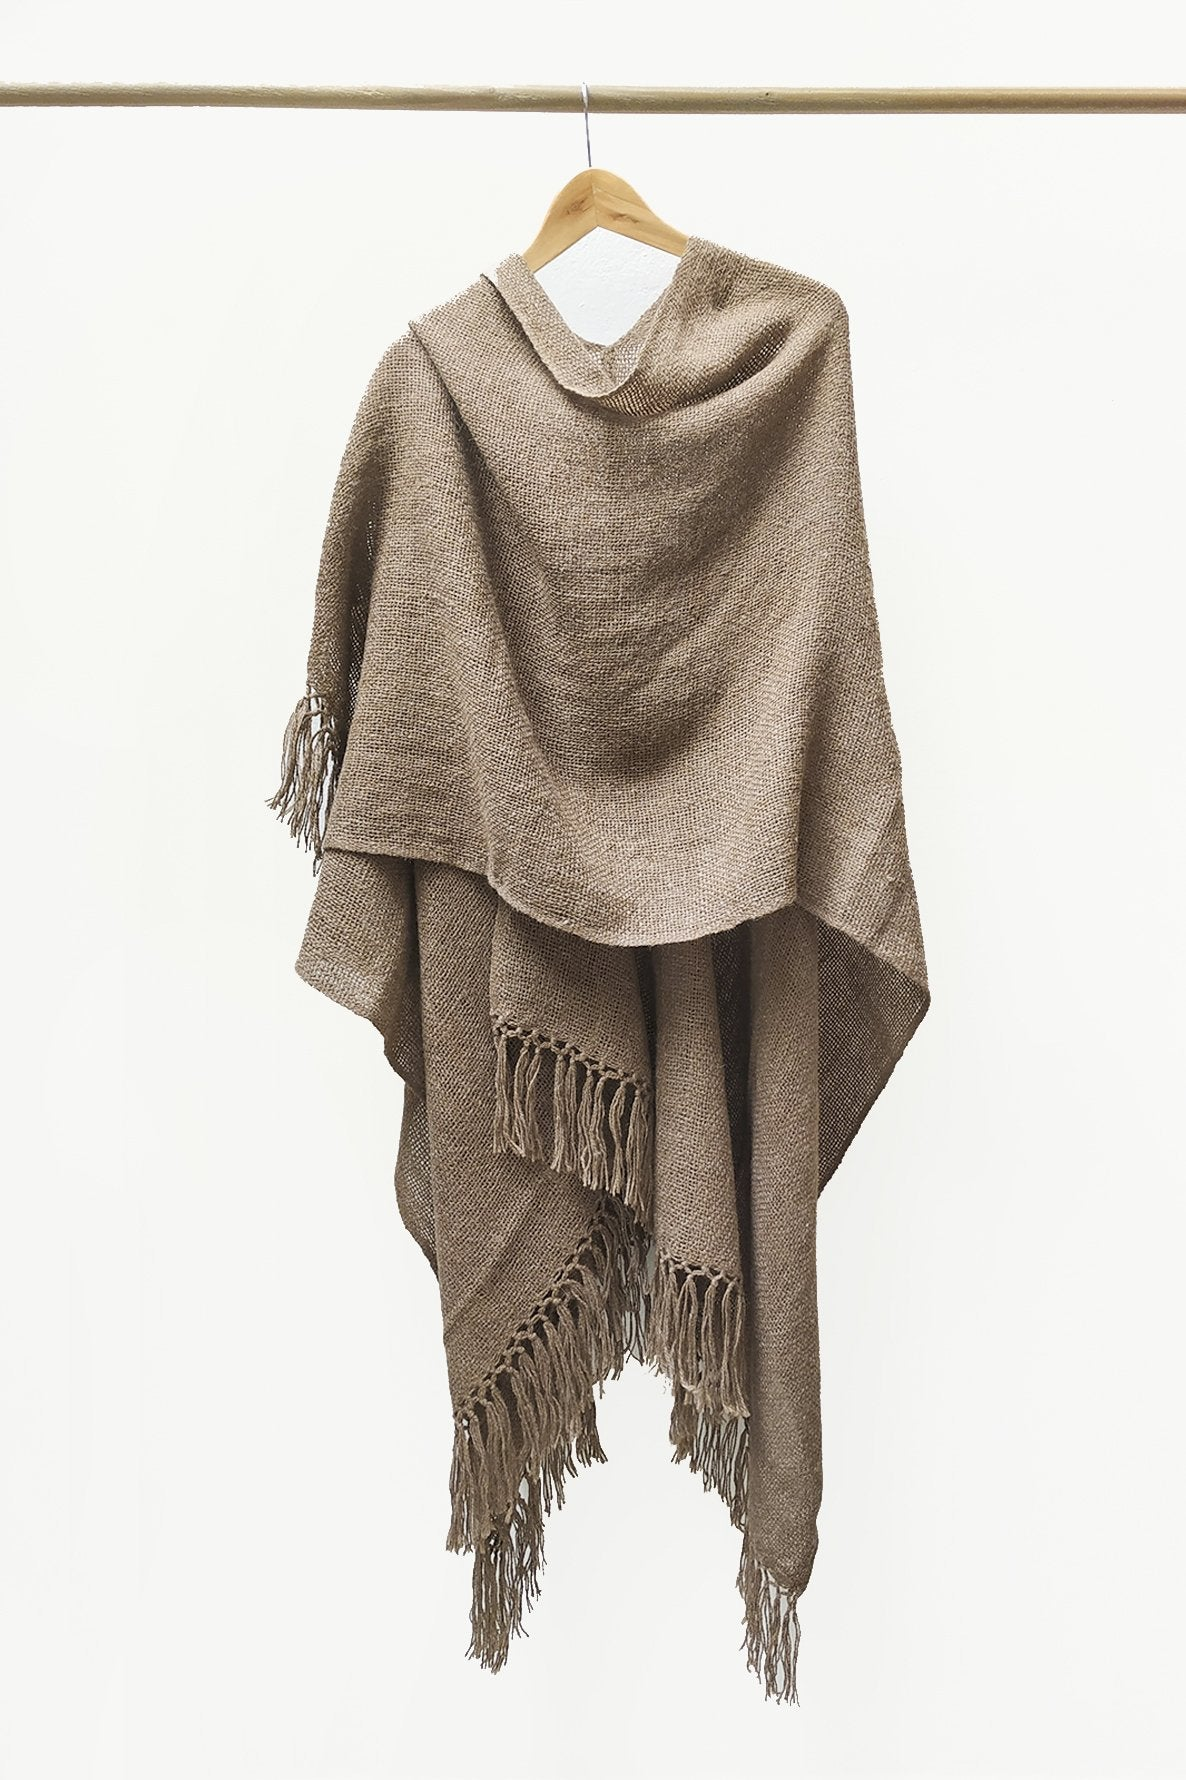 Wrapped Natural Brown Llama Handwoven Poncho.